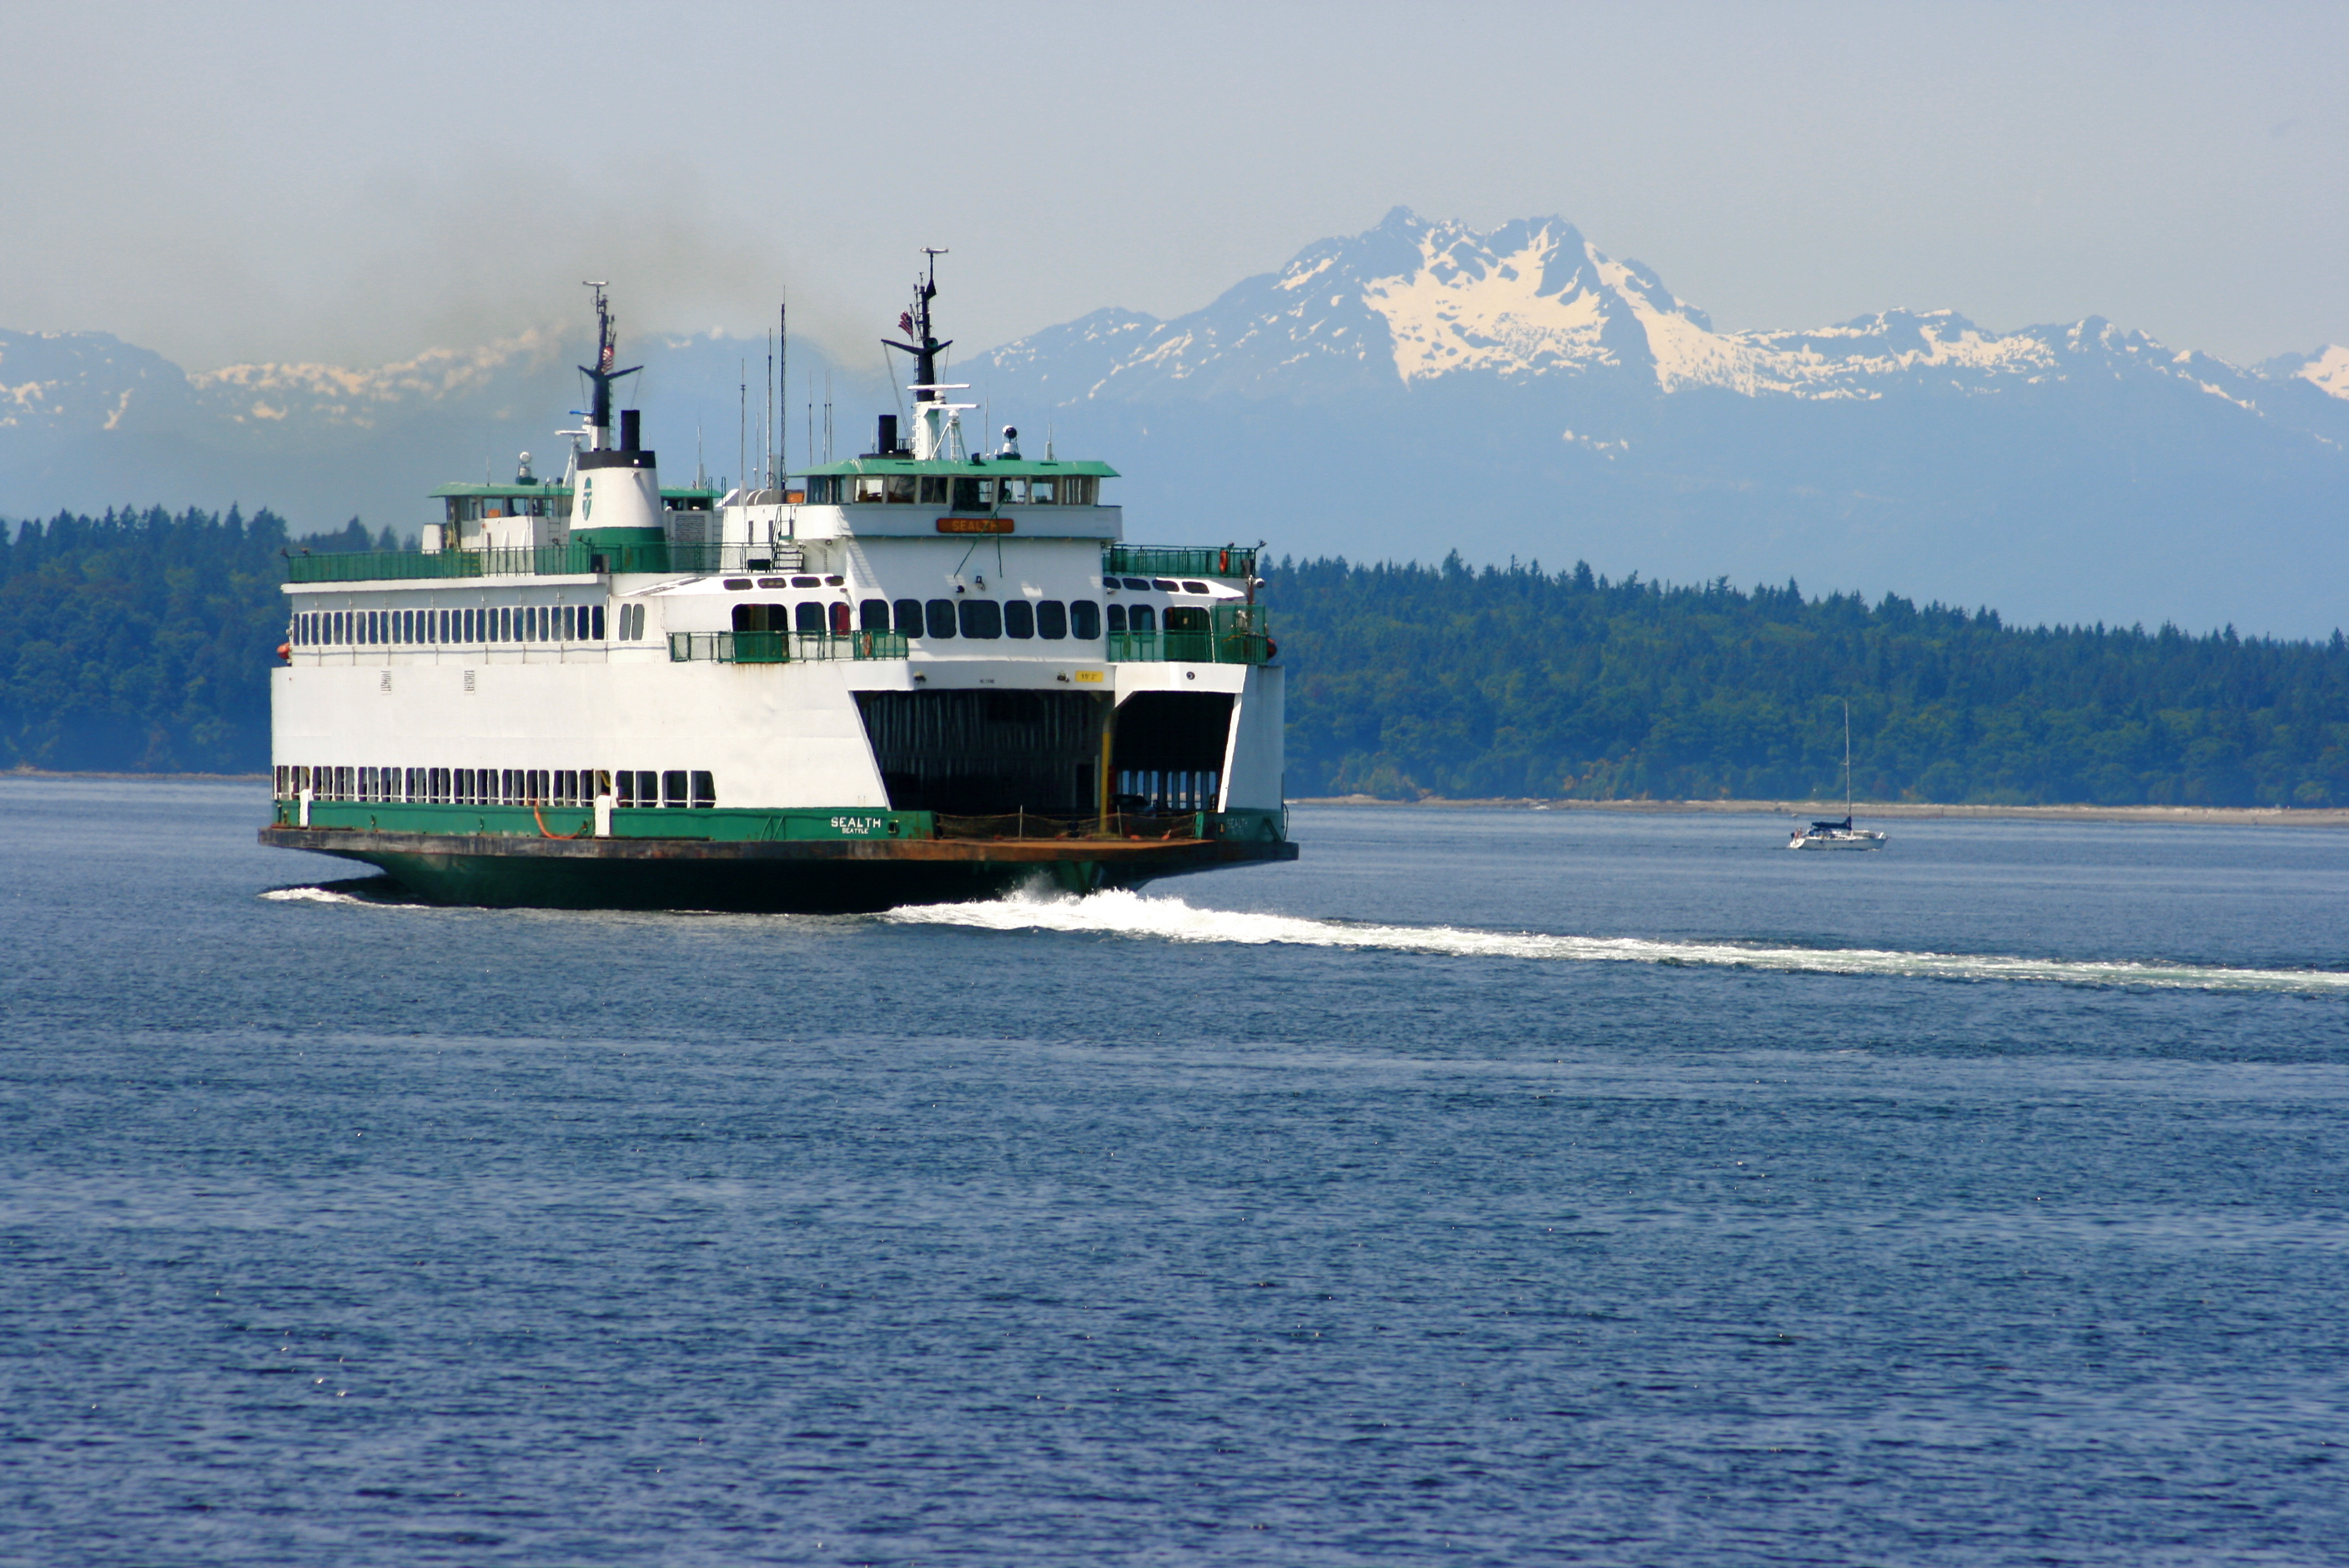 Ferry From Seattle To Orcas Island